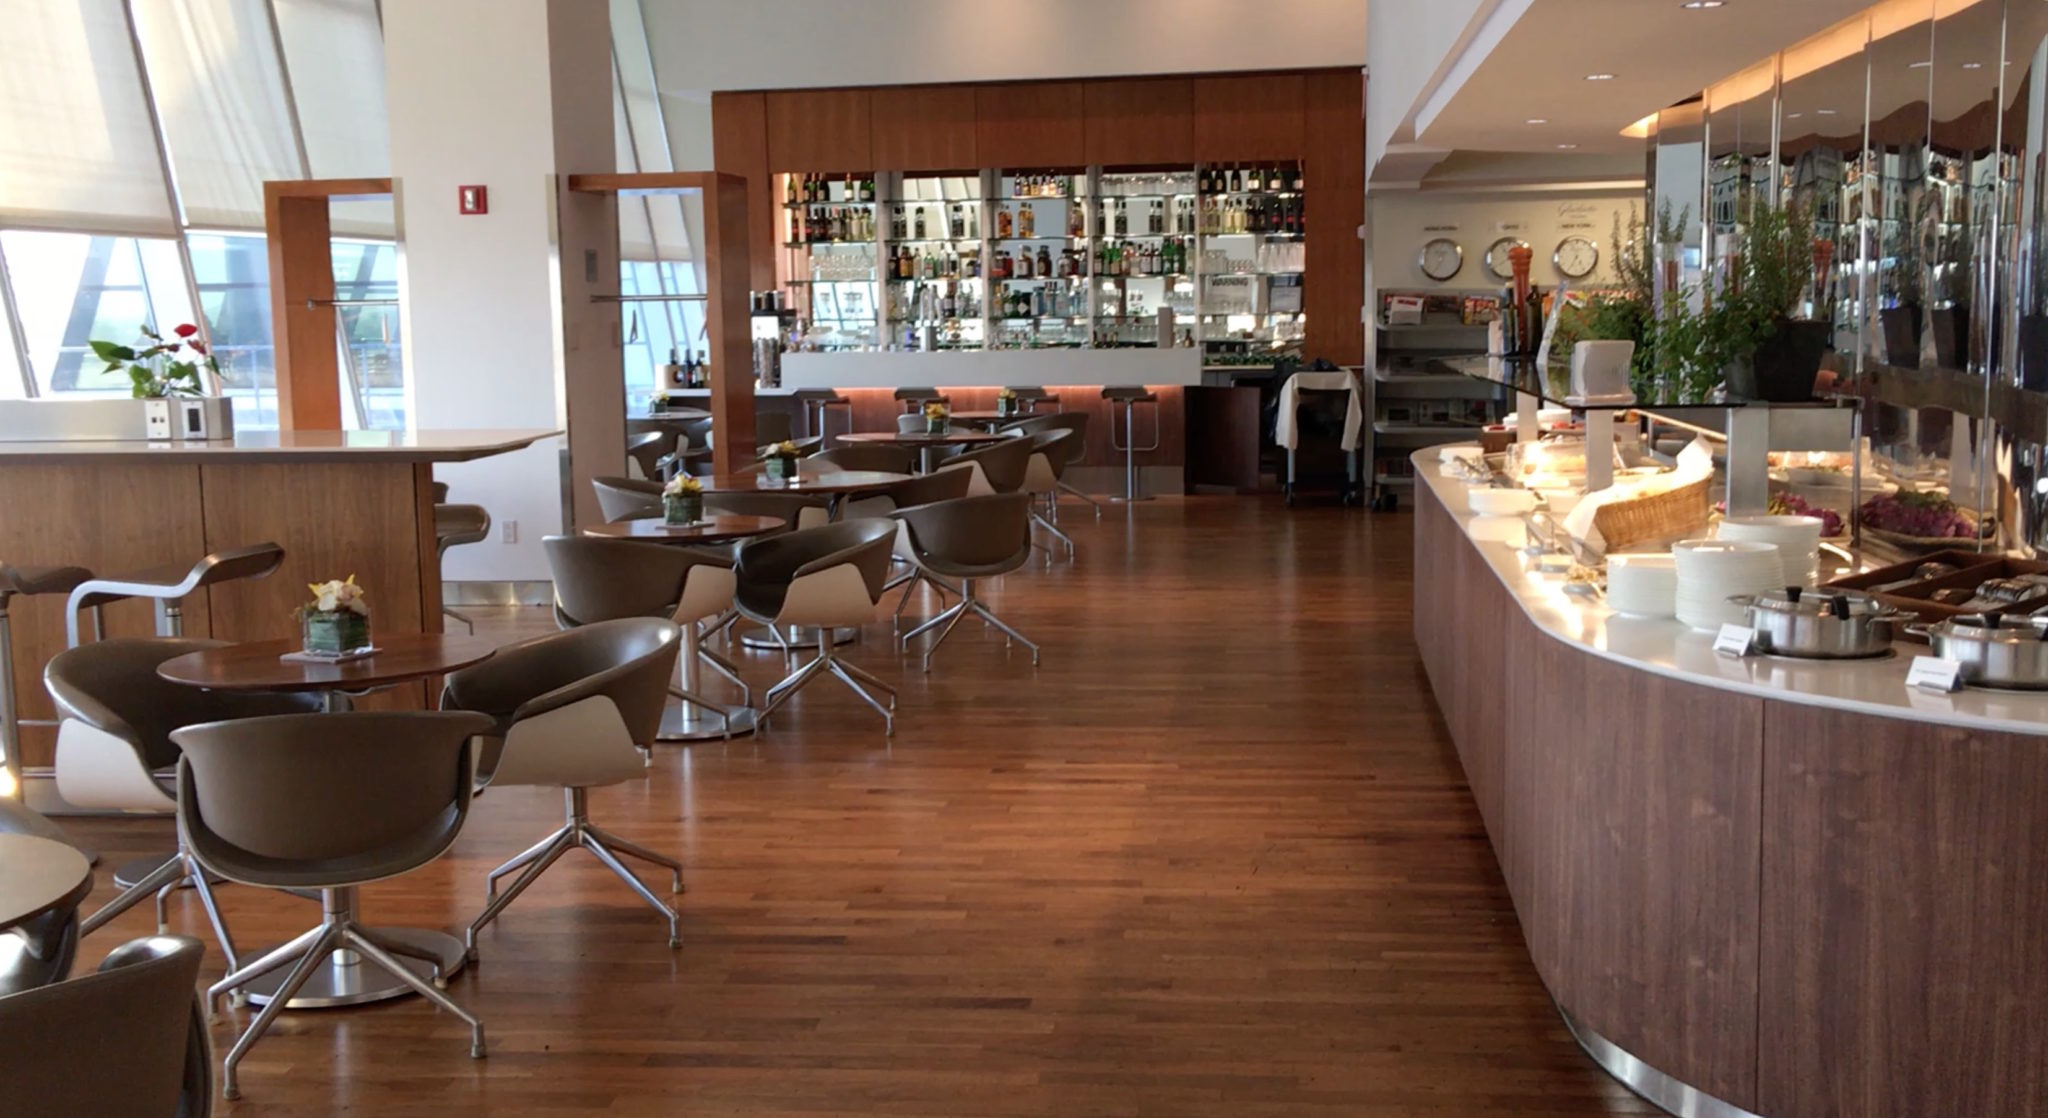 The café-bar-dining area is small — too small for three flights a night with only a light dinner service. Image: John Walton